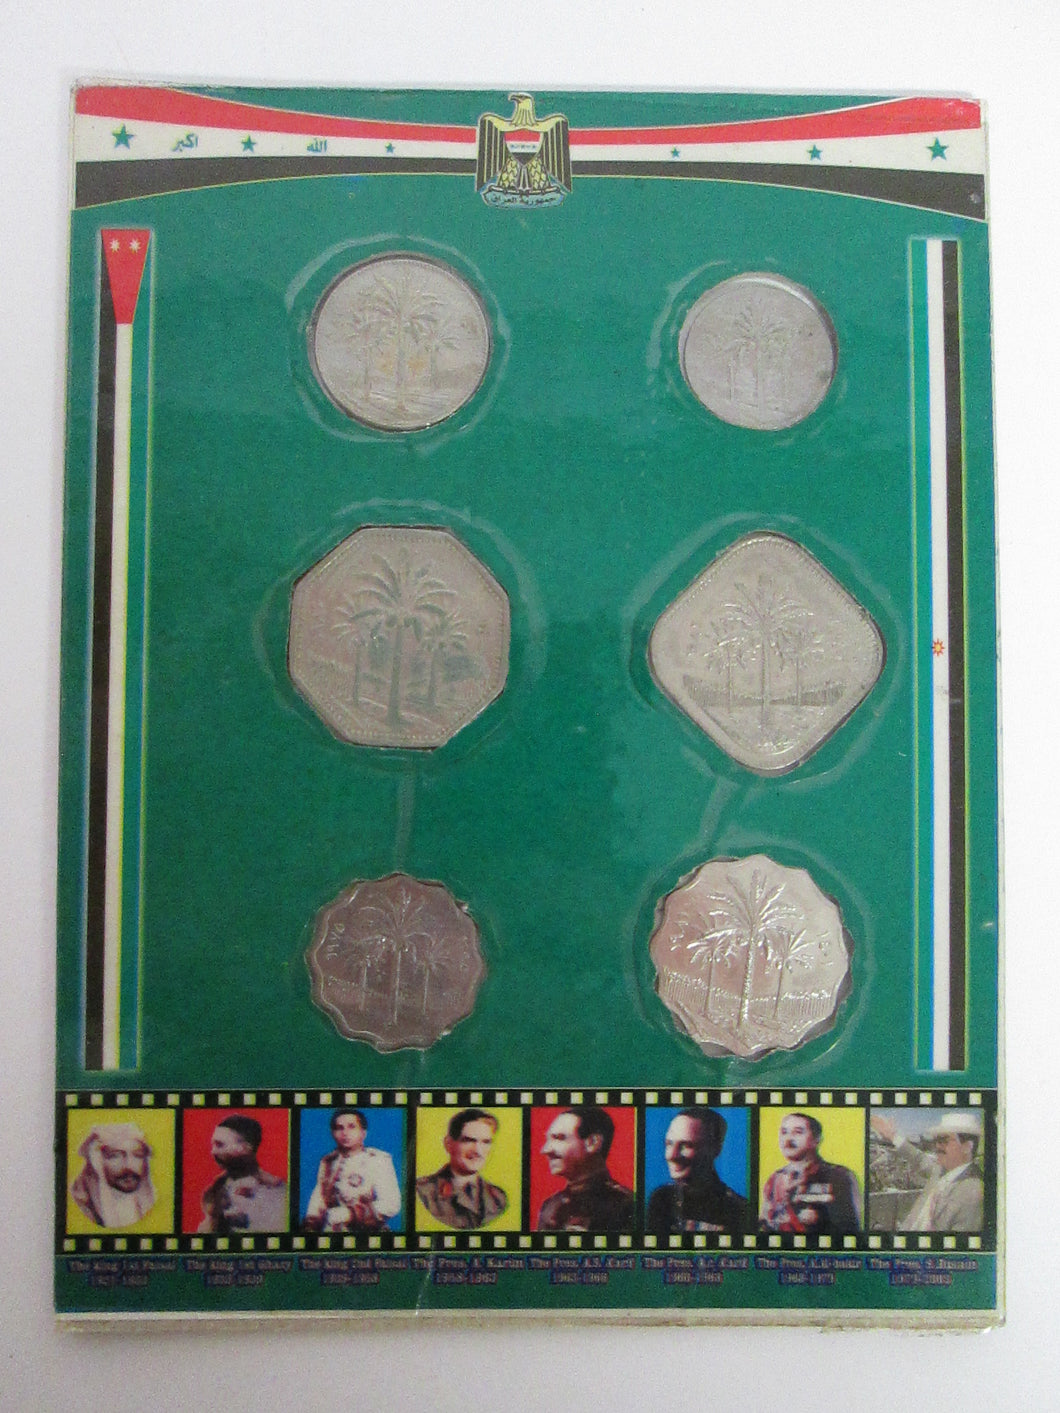 Iraqi Coin Collection commemorating Iraqi rulers since 1921 to Saddam Hussein 2003